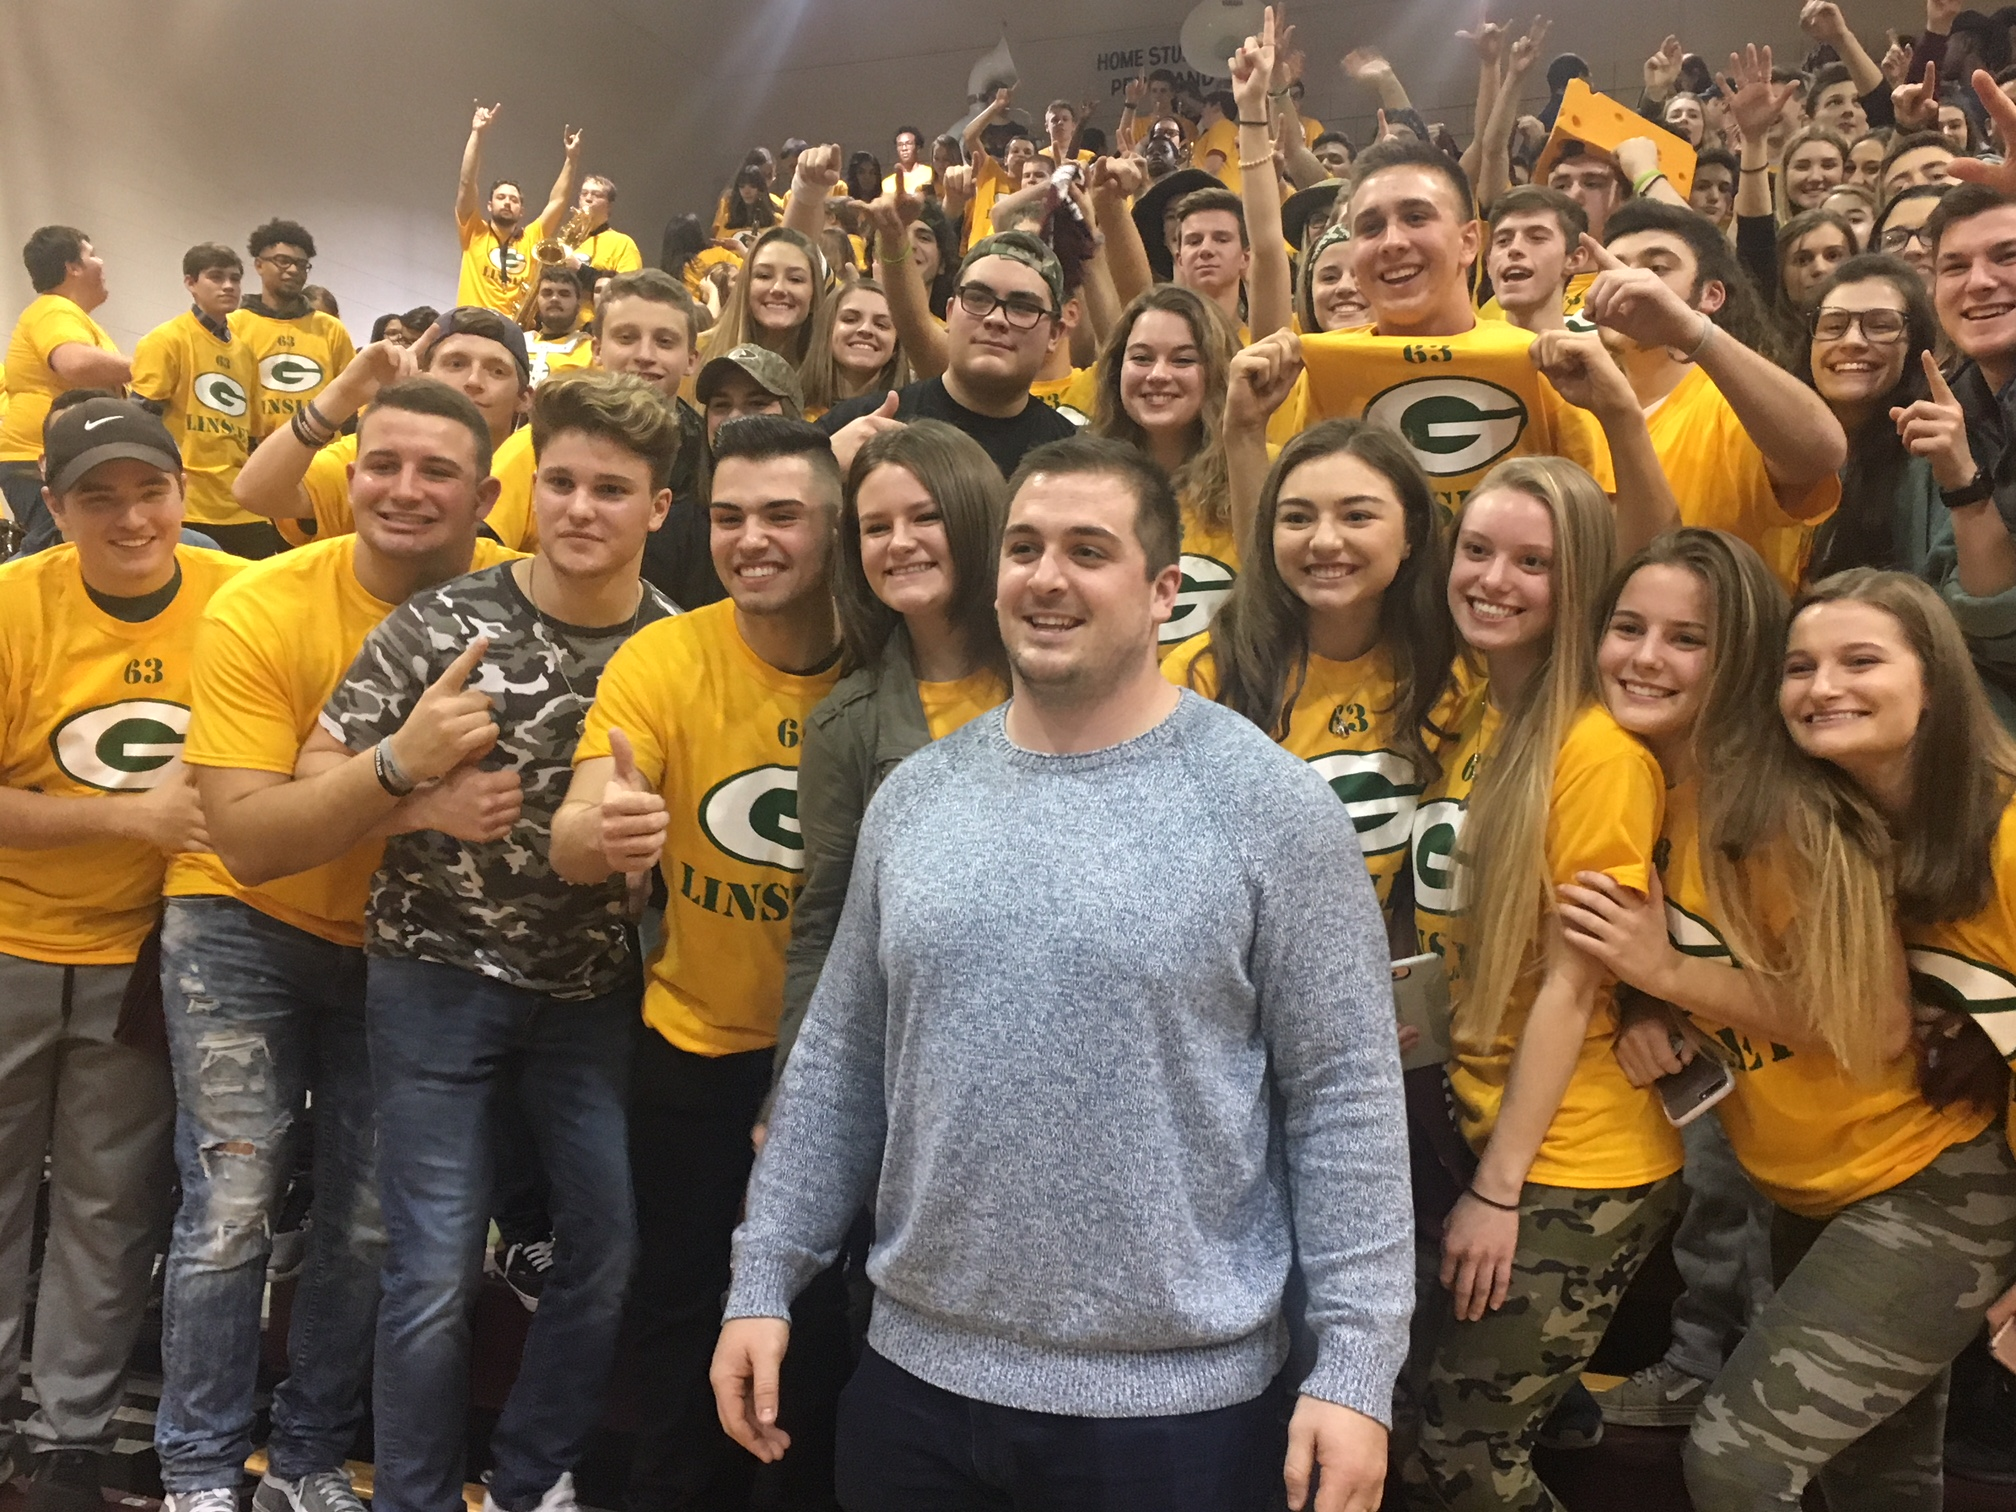 corey with students dressed in packer gear